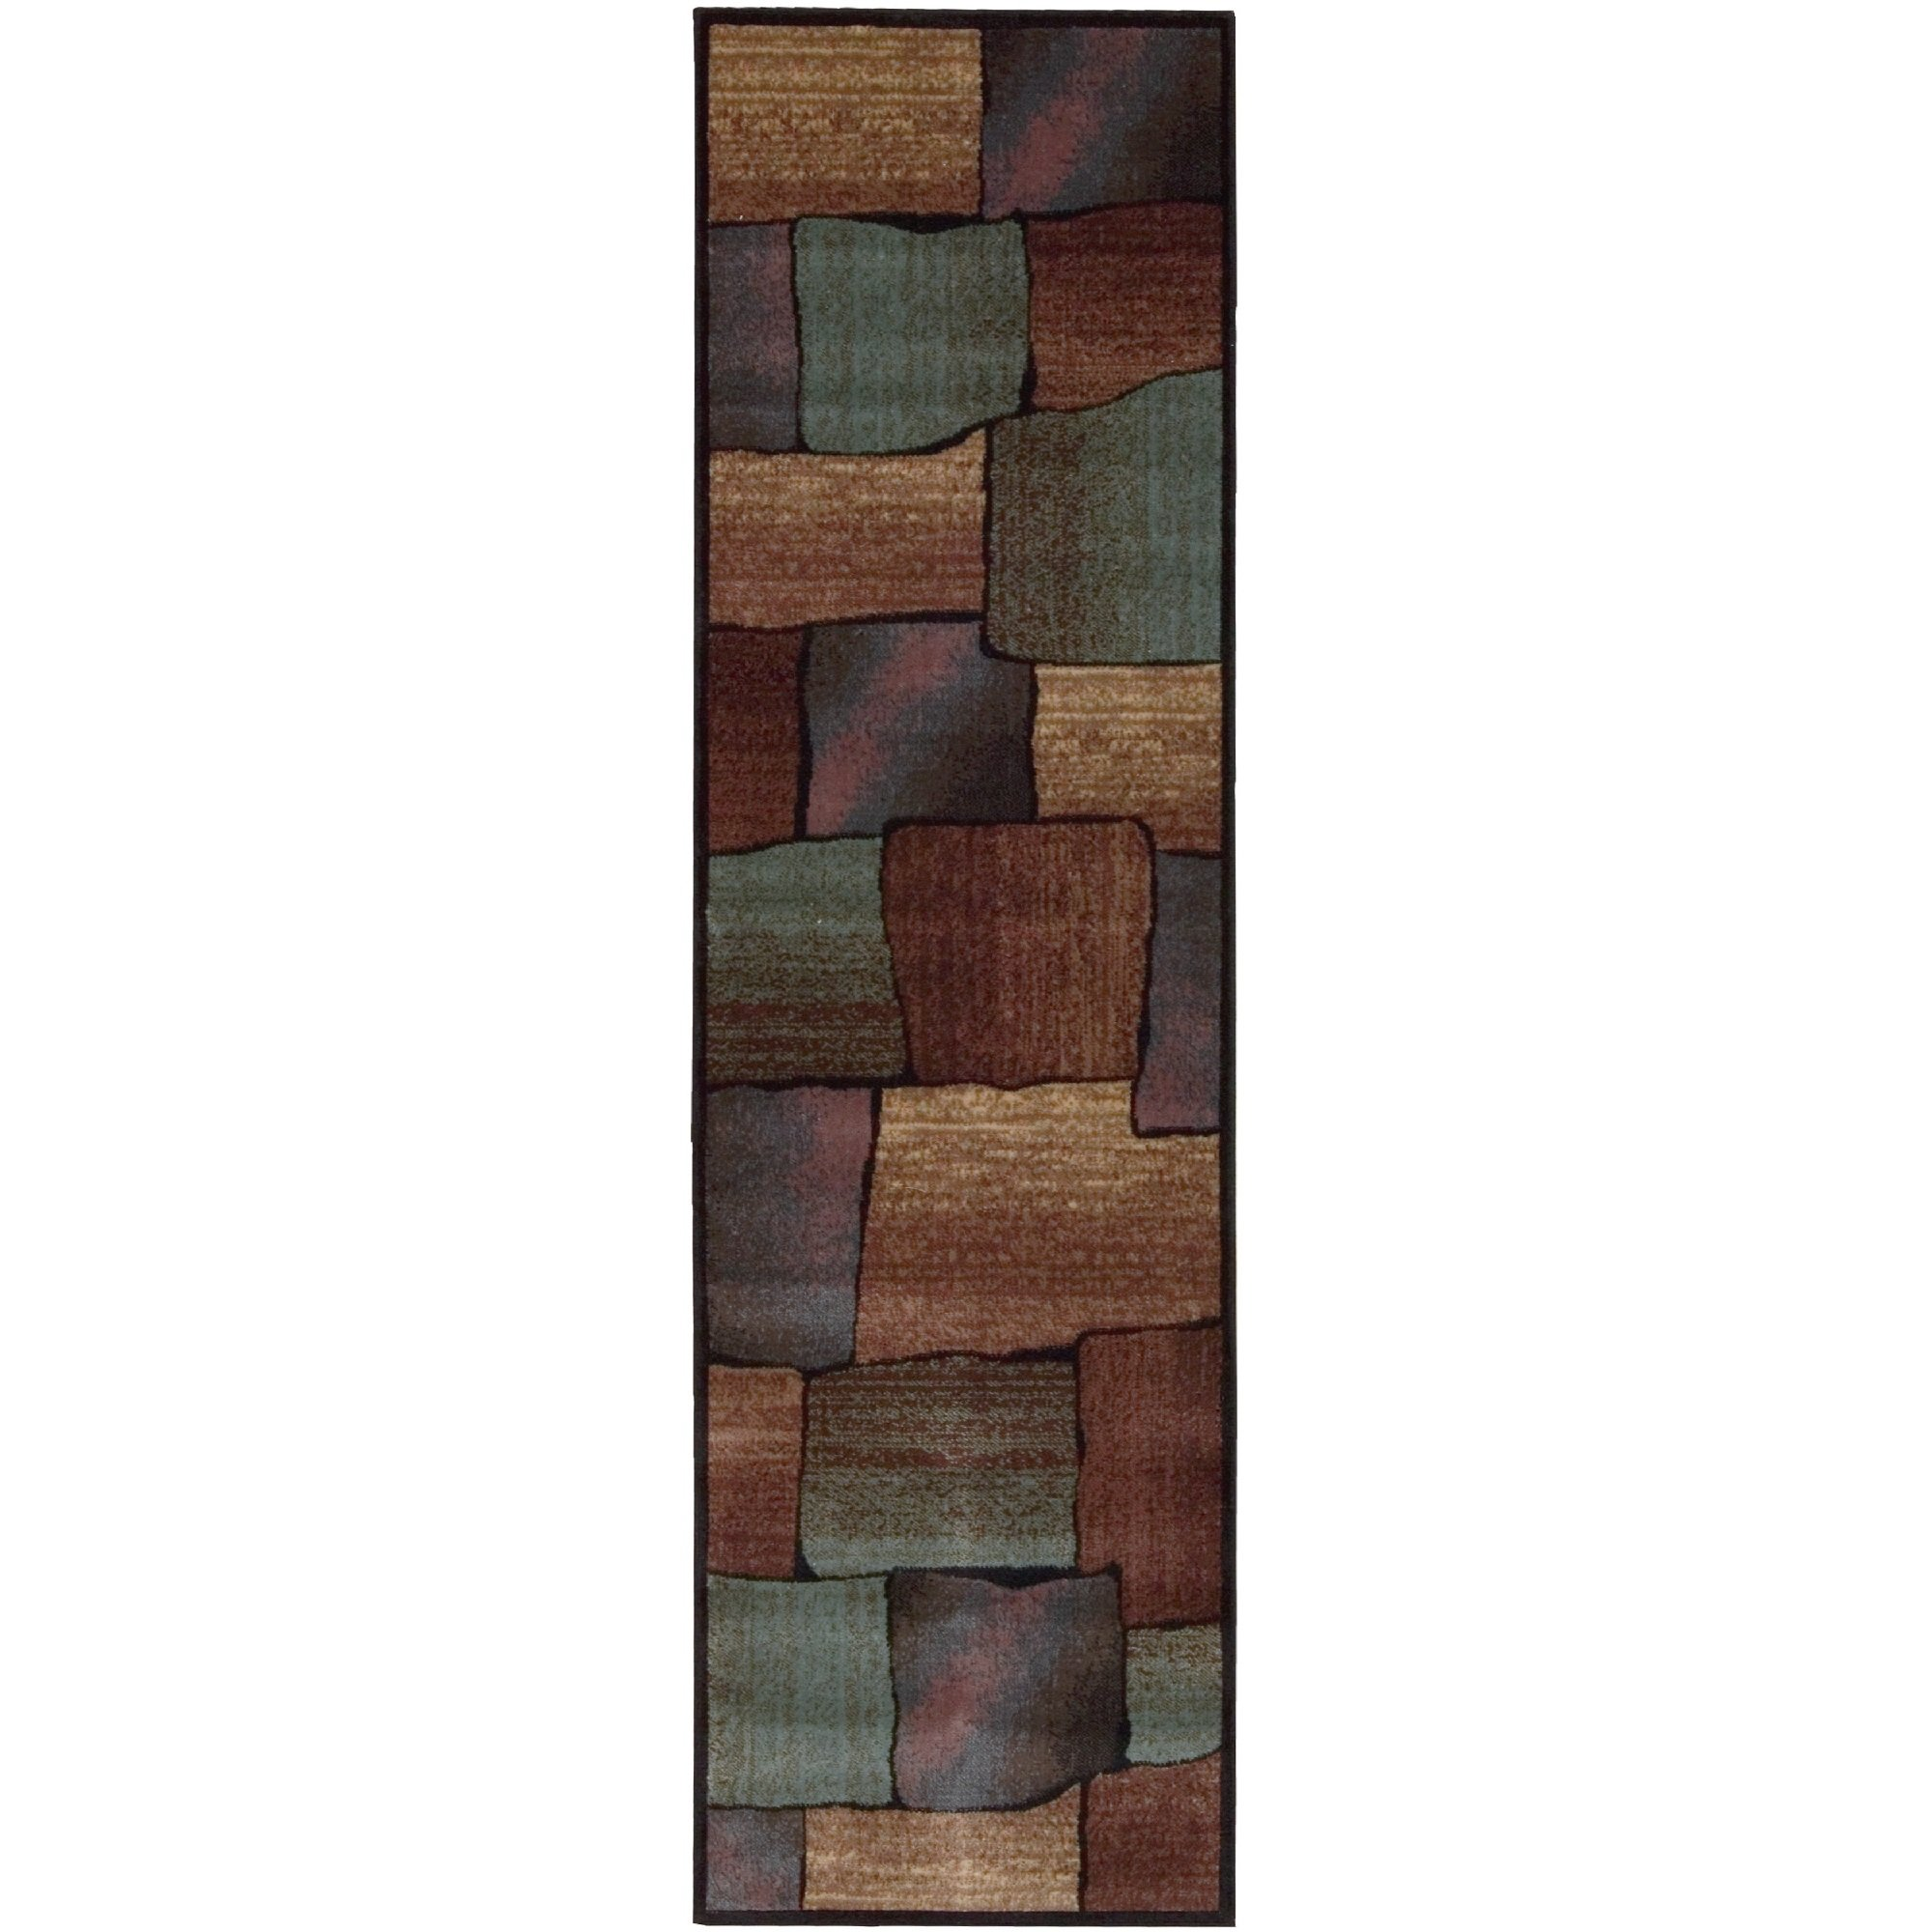 Earthy Geometric Squares Design Area Rug, Featuring Rustic Color Blocked Boxes Pattern, Runner Indoor Hallway Doorway Bedroom Dining Area Carpet, Western Country Themed, Brown, Green, Size 2' x 5'9